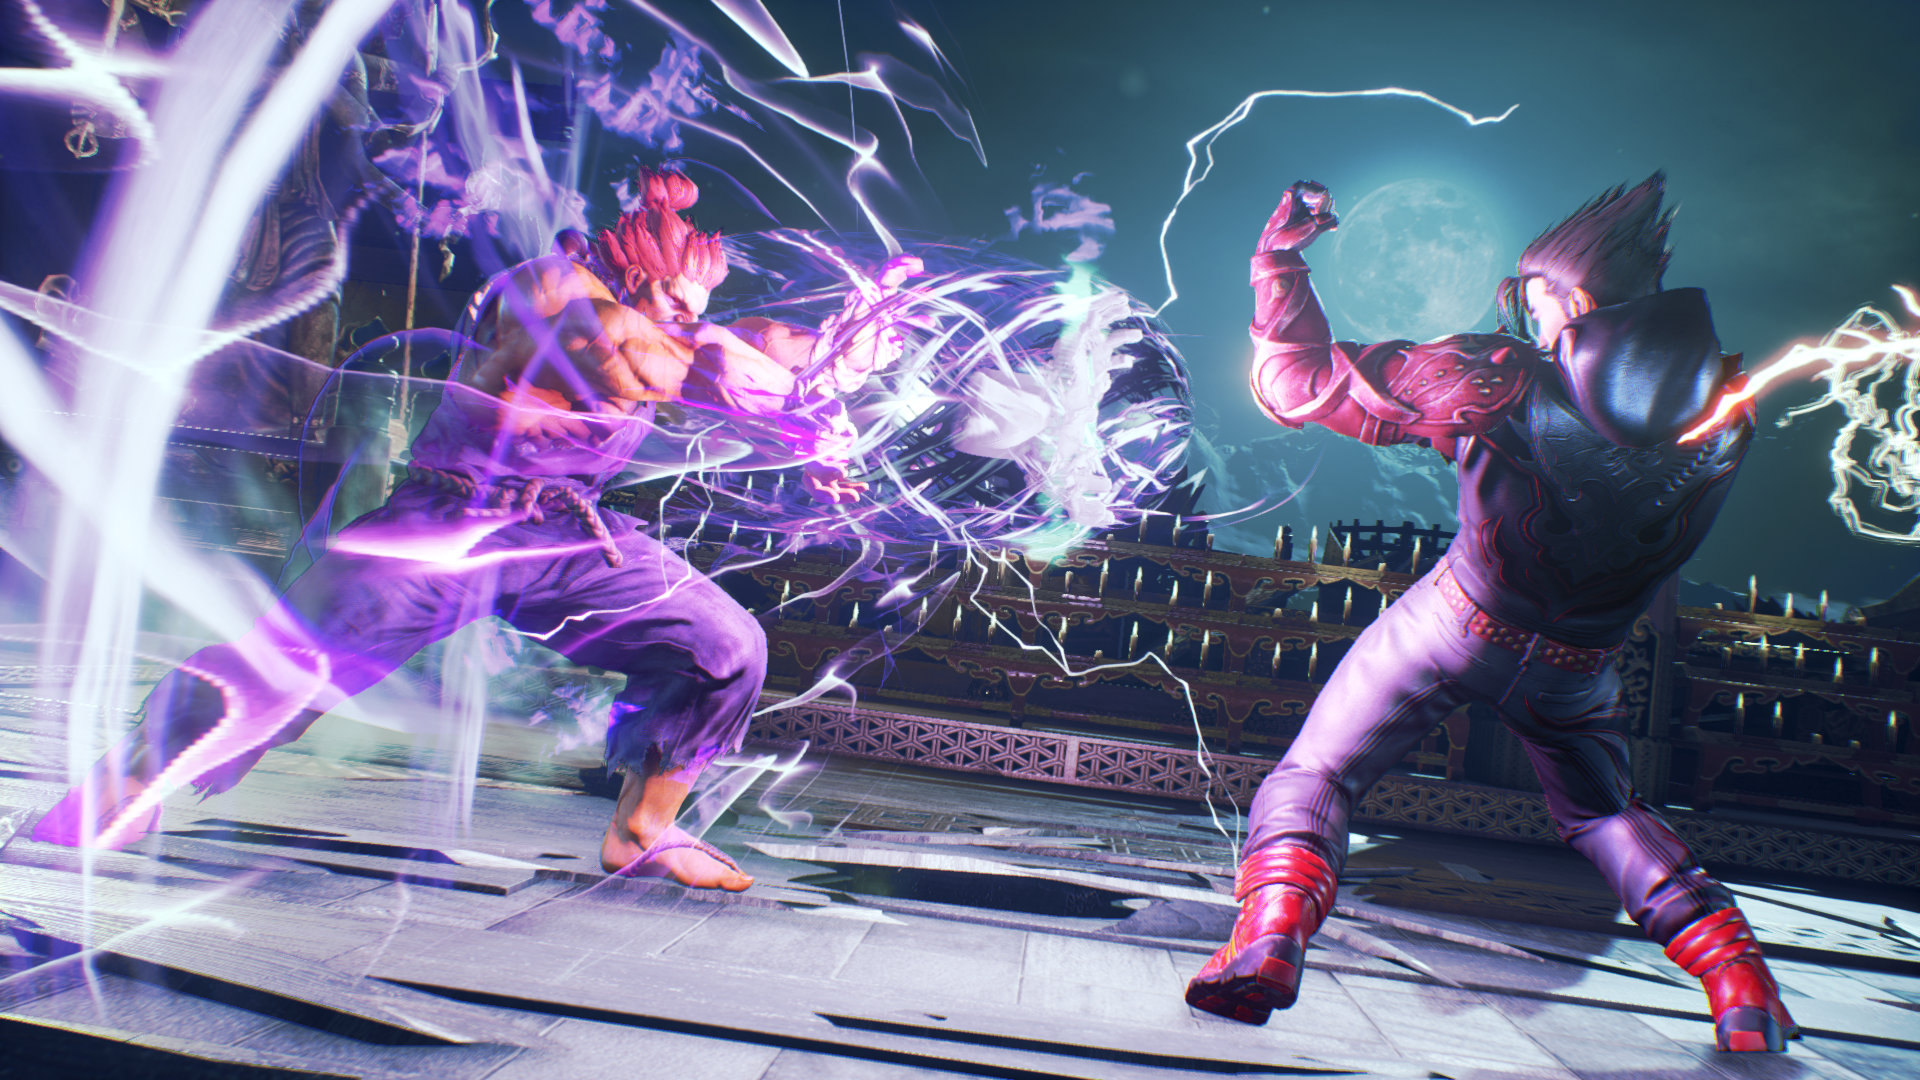 Tekken Bowl Is Making its Triumphant Return as Tekken 7's First DLC